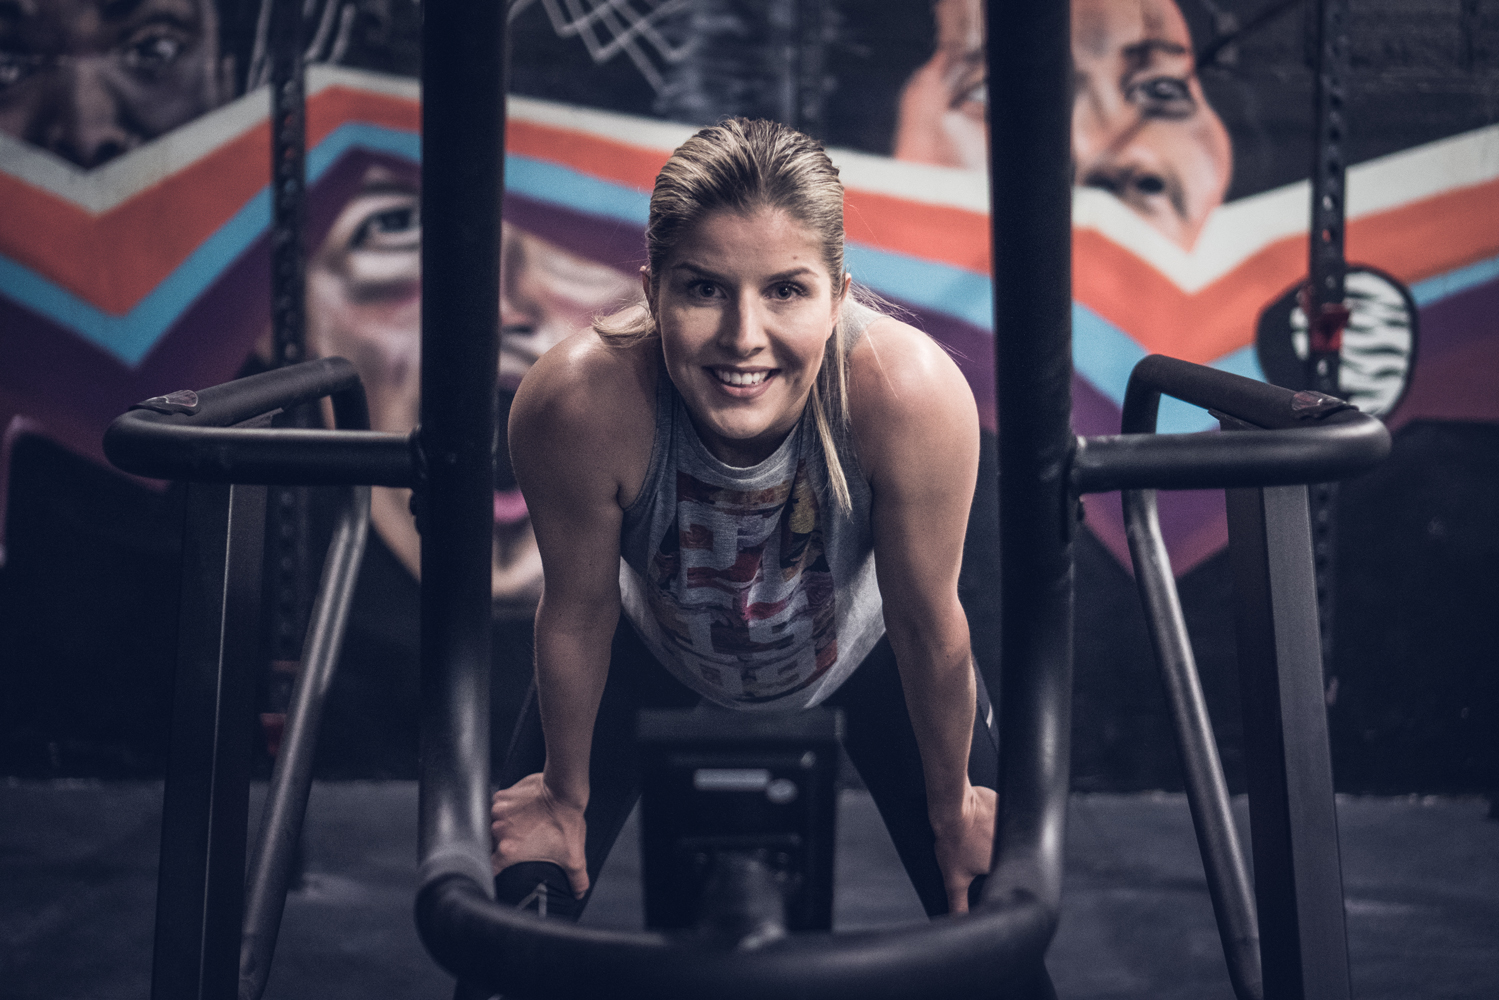 Happy woman training in a urban gym